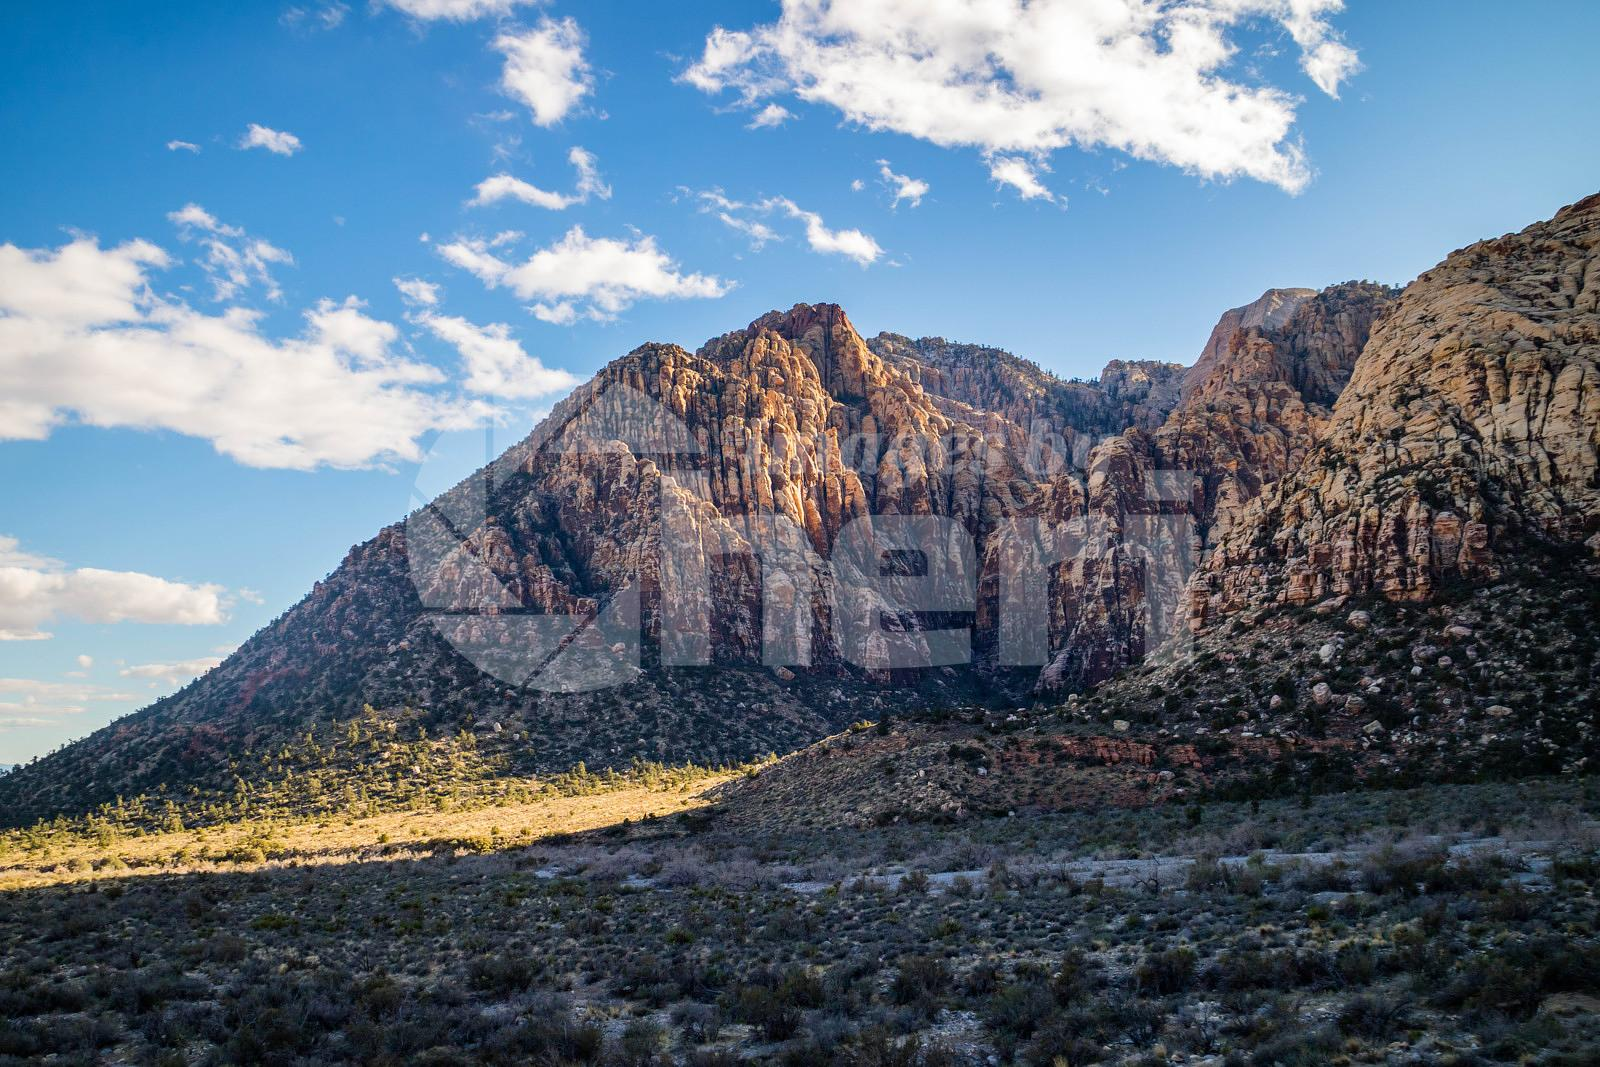 Mountain Ridges in Red Rock Canyon Conservation Area, Nevada